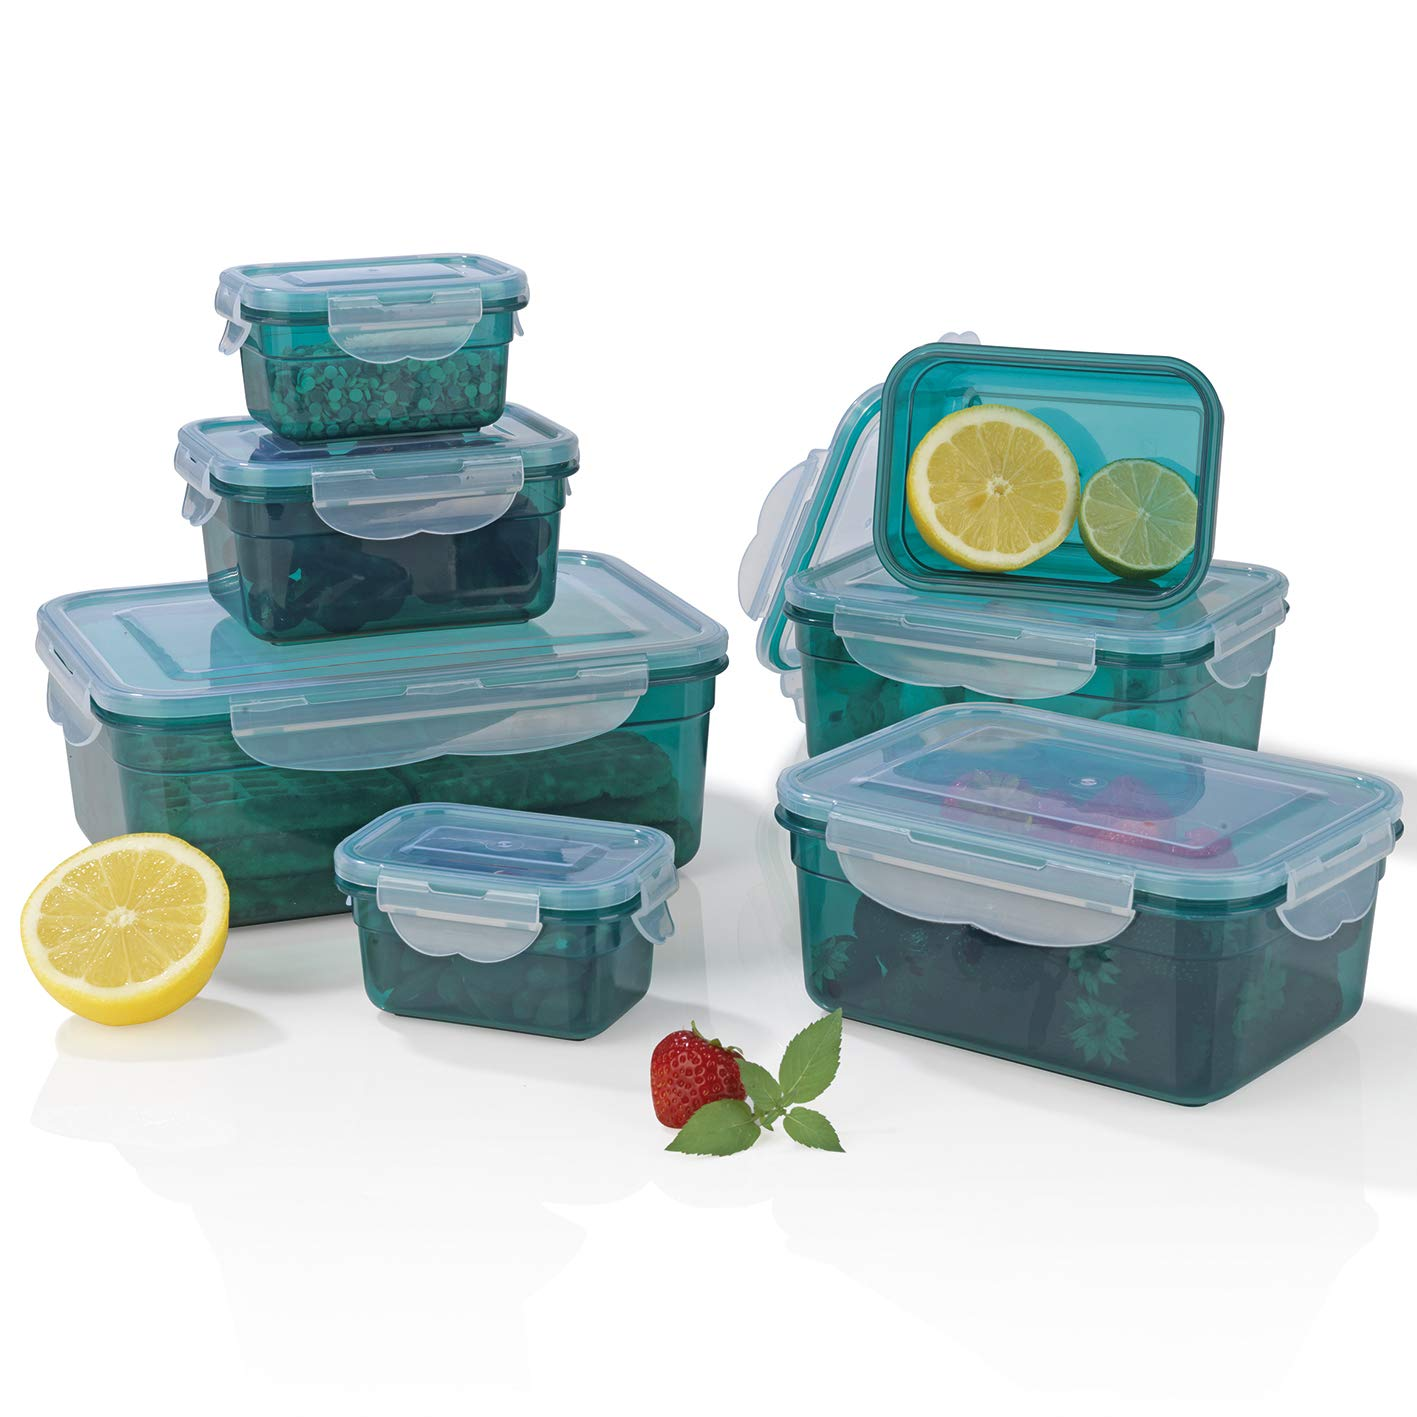 GOURMETmaxx 02914 BPA-Free Food Storage Container-Set, 14 Pieces   Suitable for Dishwasher, Freezer, Microwave   Clip Lid Food Container   Air tight, liquid proofed and Aroma Safe TV Top Ventes